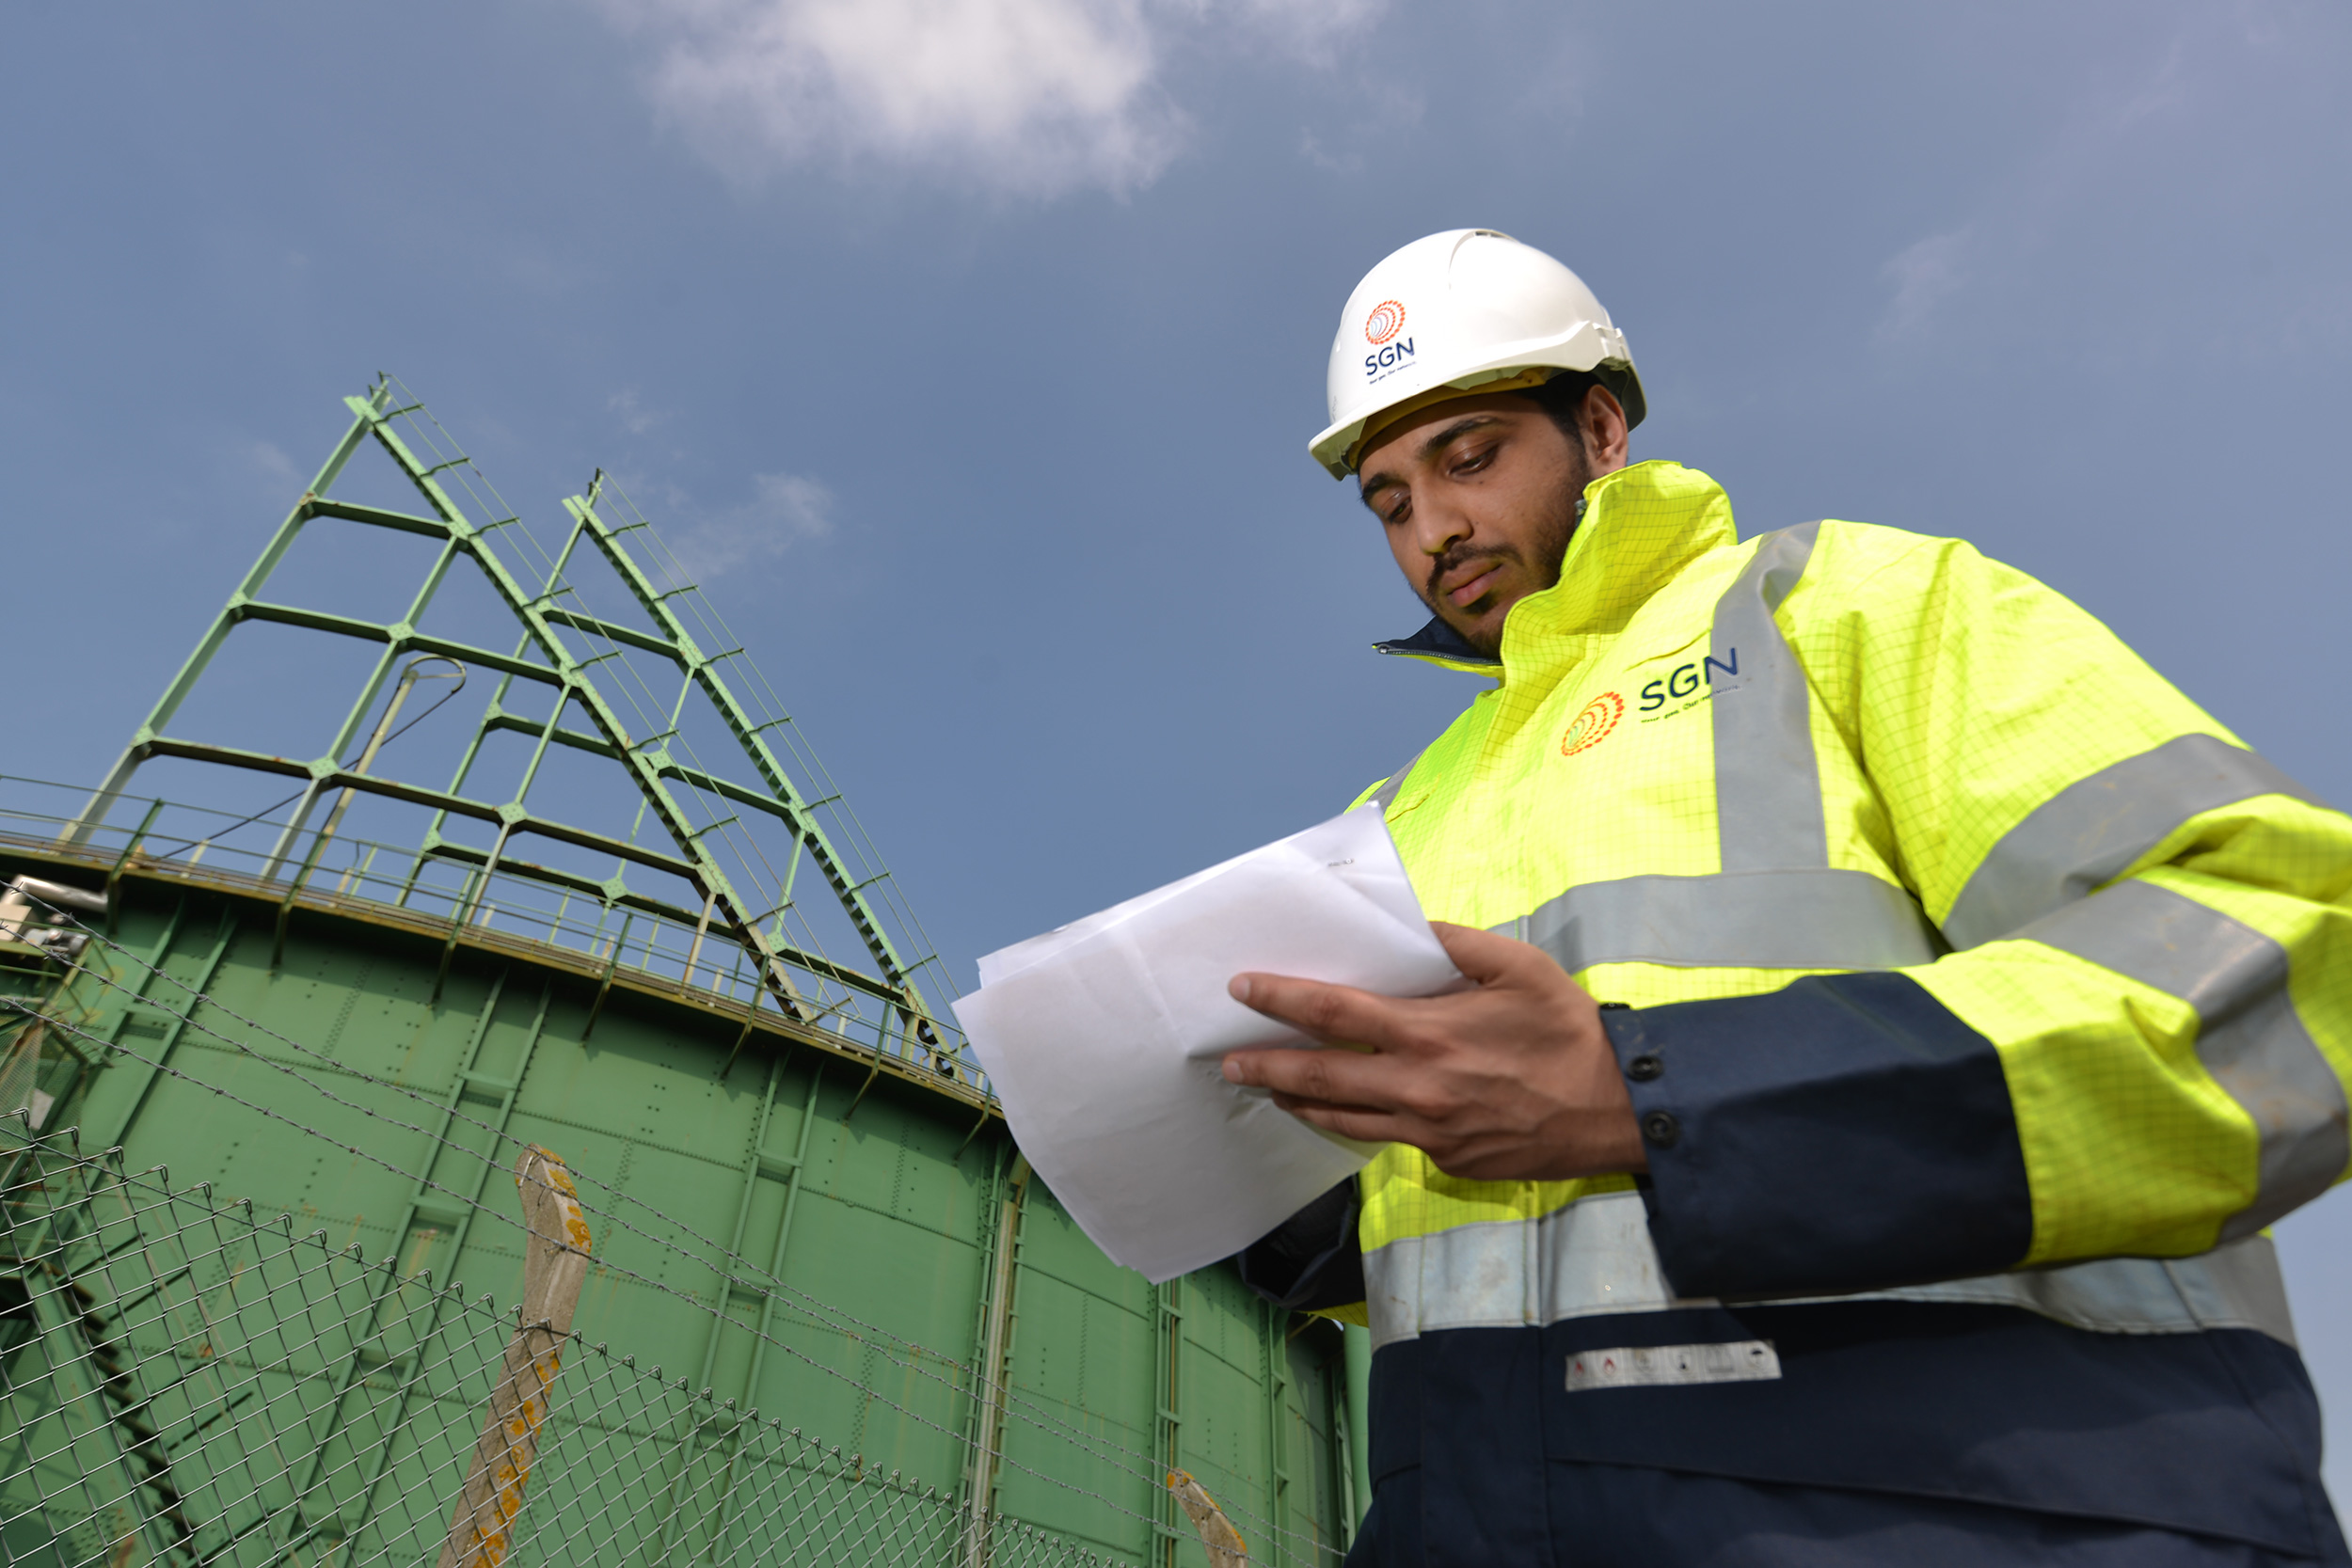 A SGN engineer wearing a high-visibility jacket and hardhat and holding a piece of paper, standing in front of a gas holder